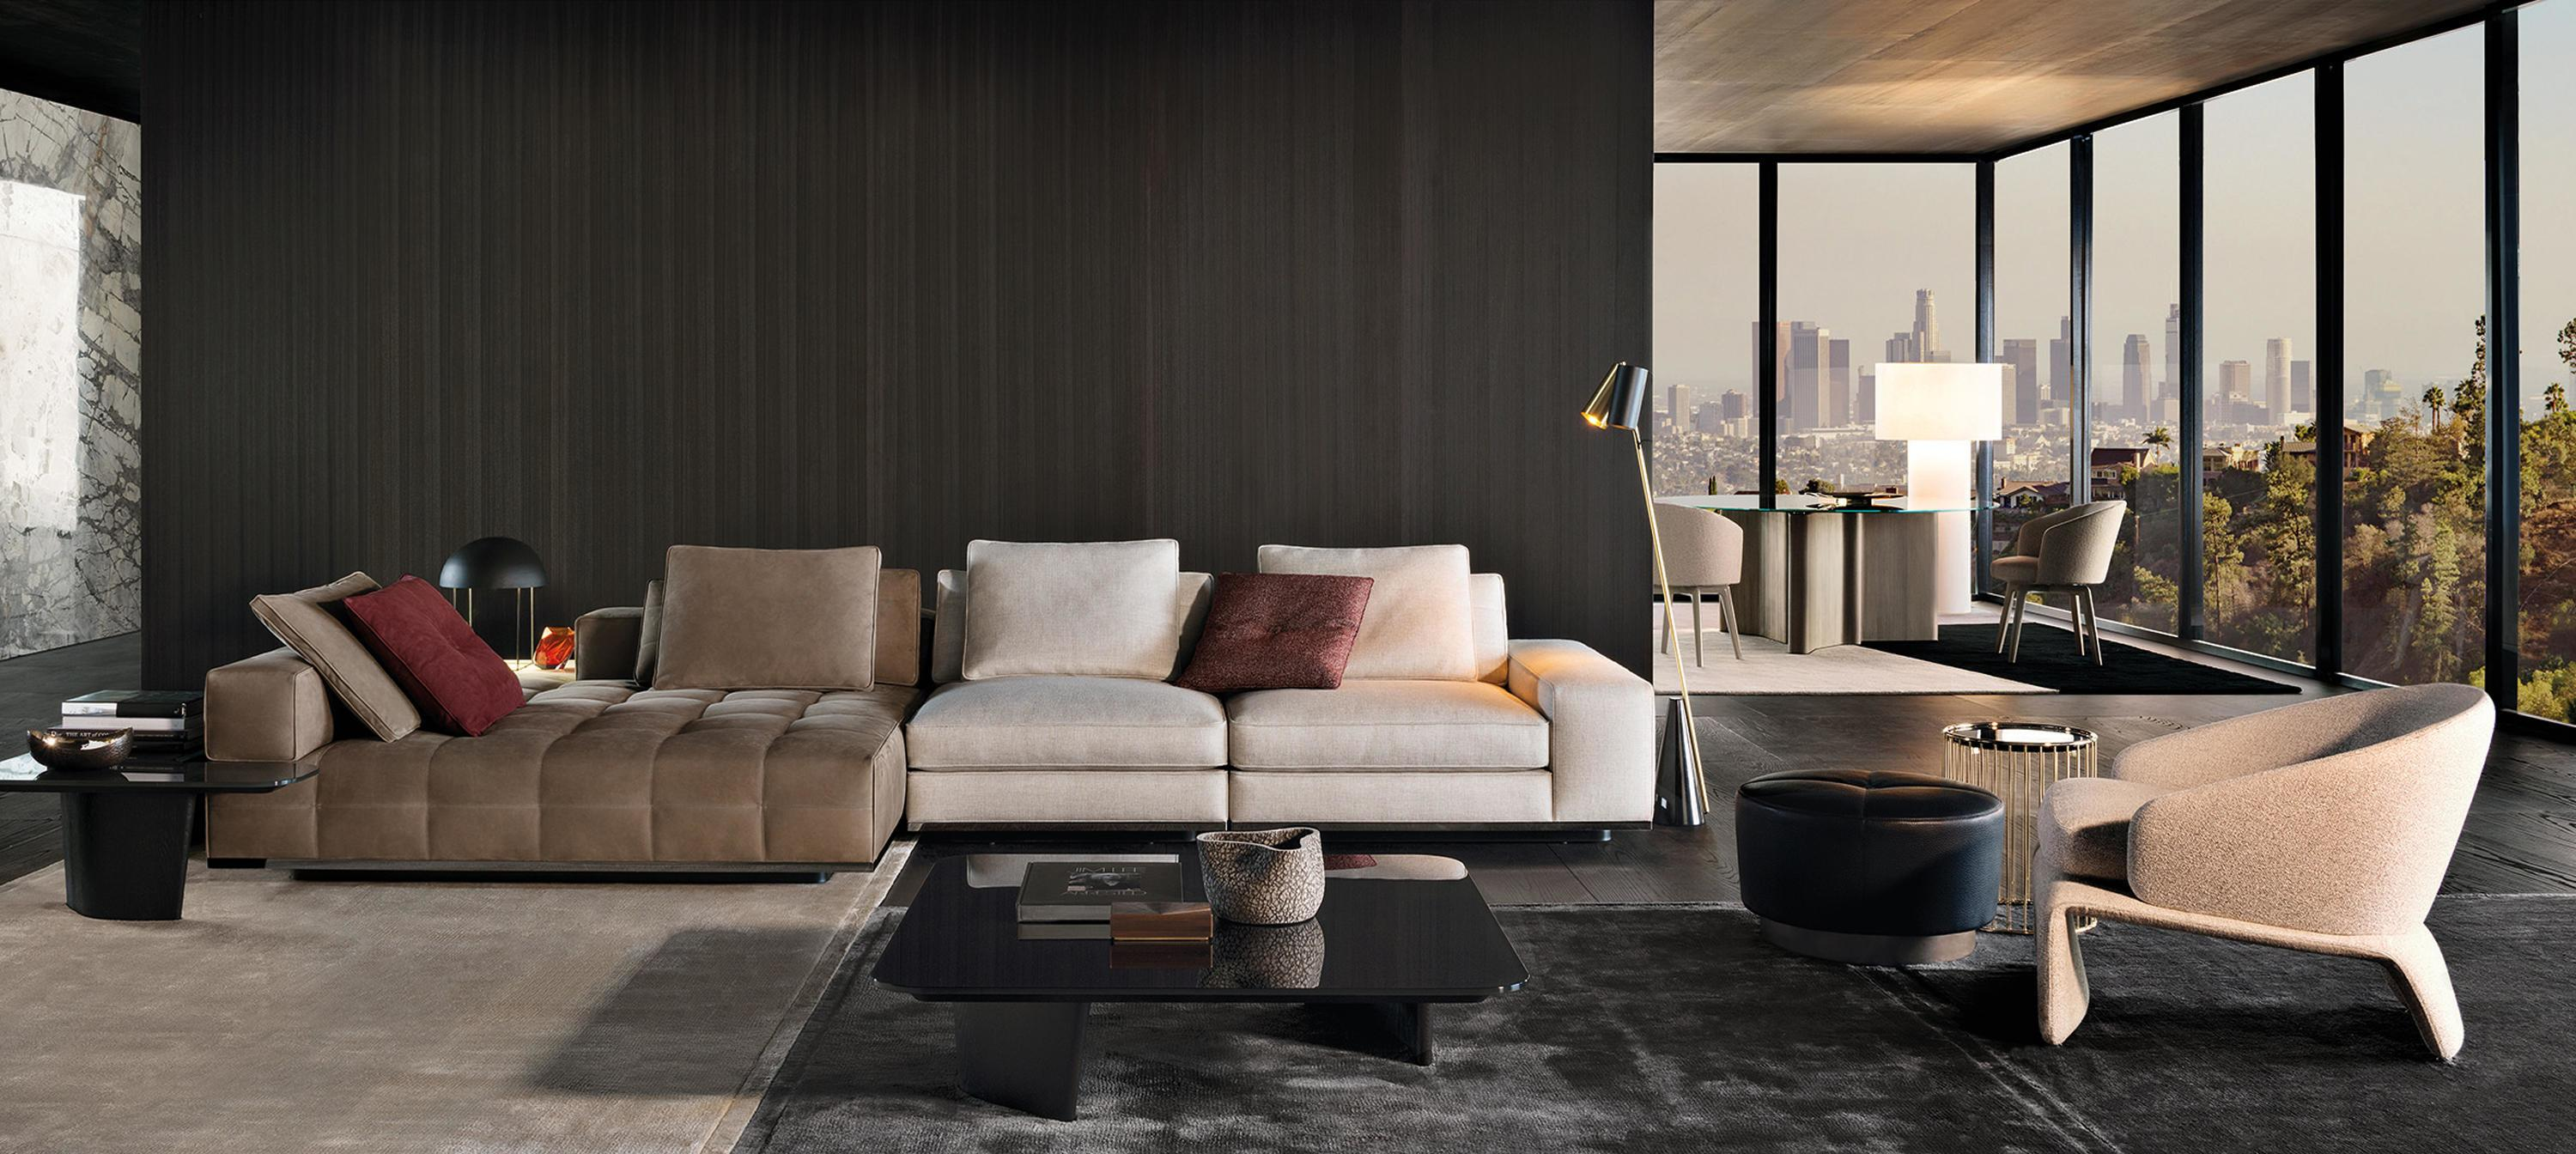 Lawrence Seating System Sofas Minotti Architonic